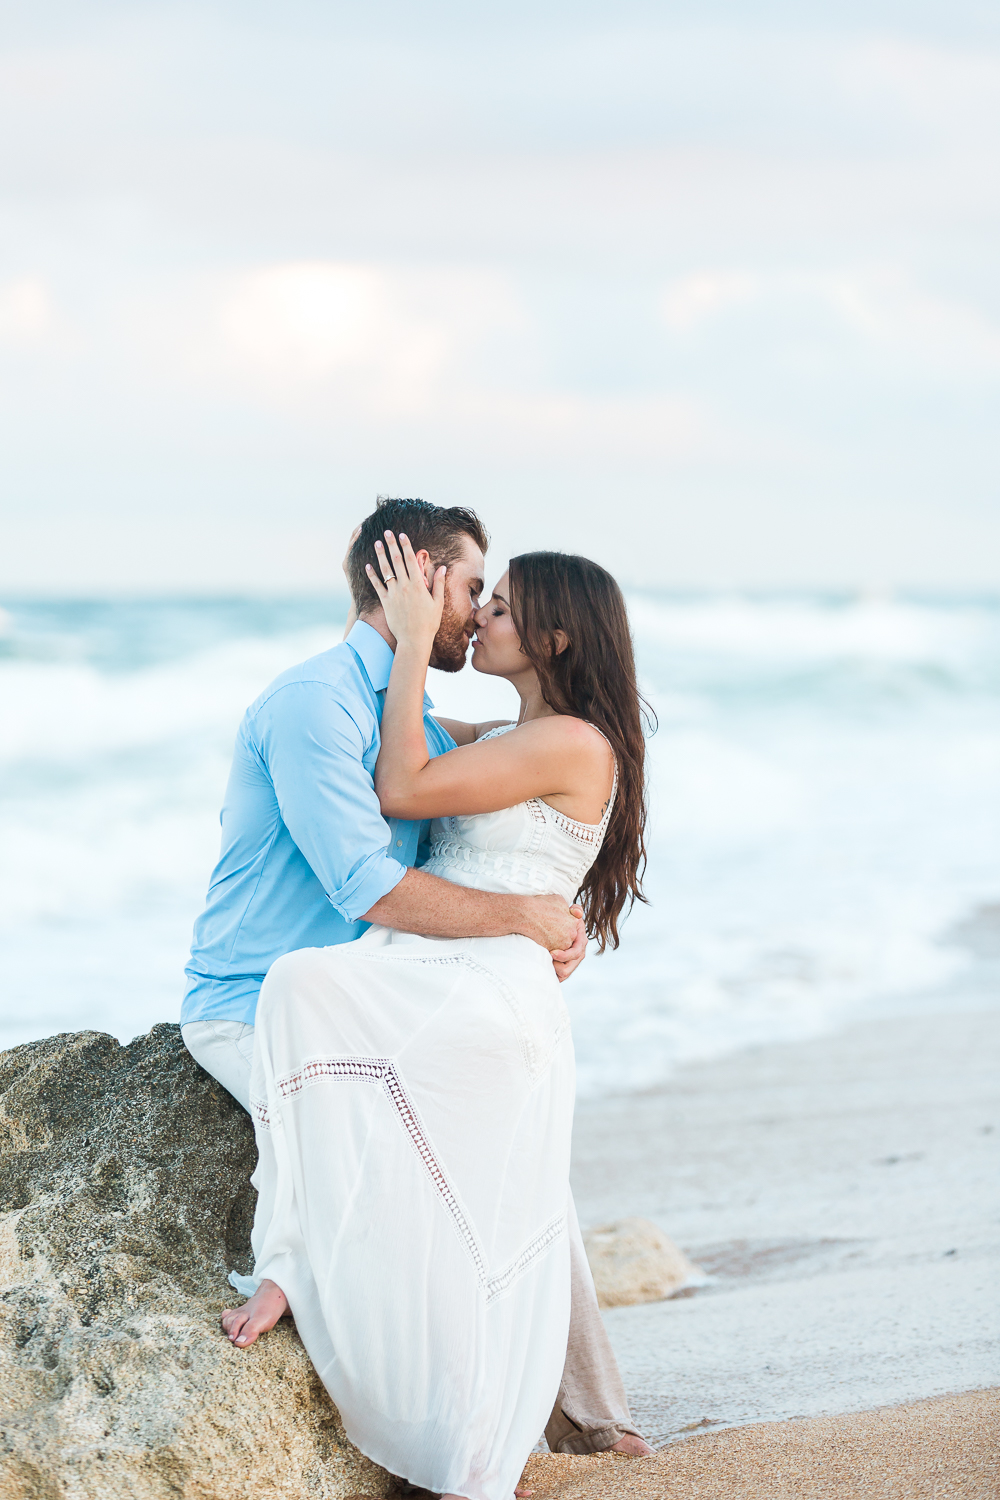 professional engagement pictures at the beach in st.augustine fl